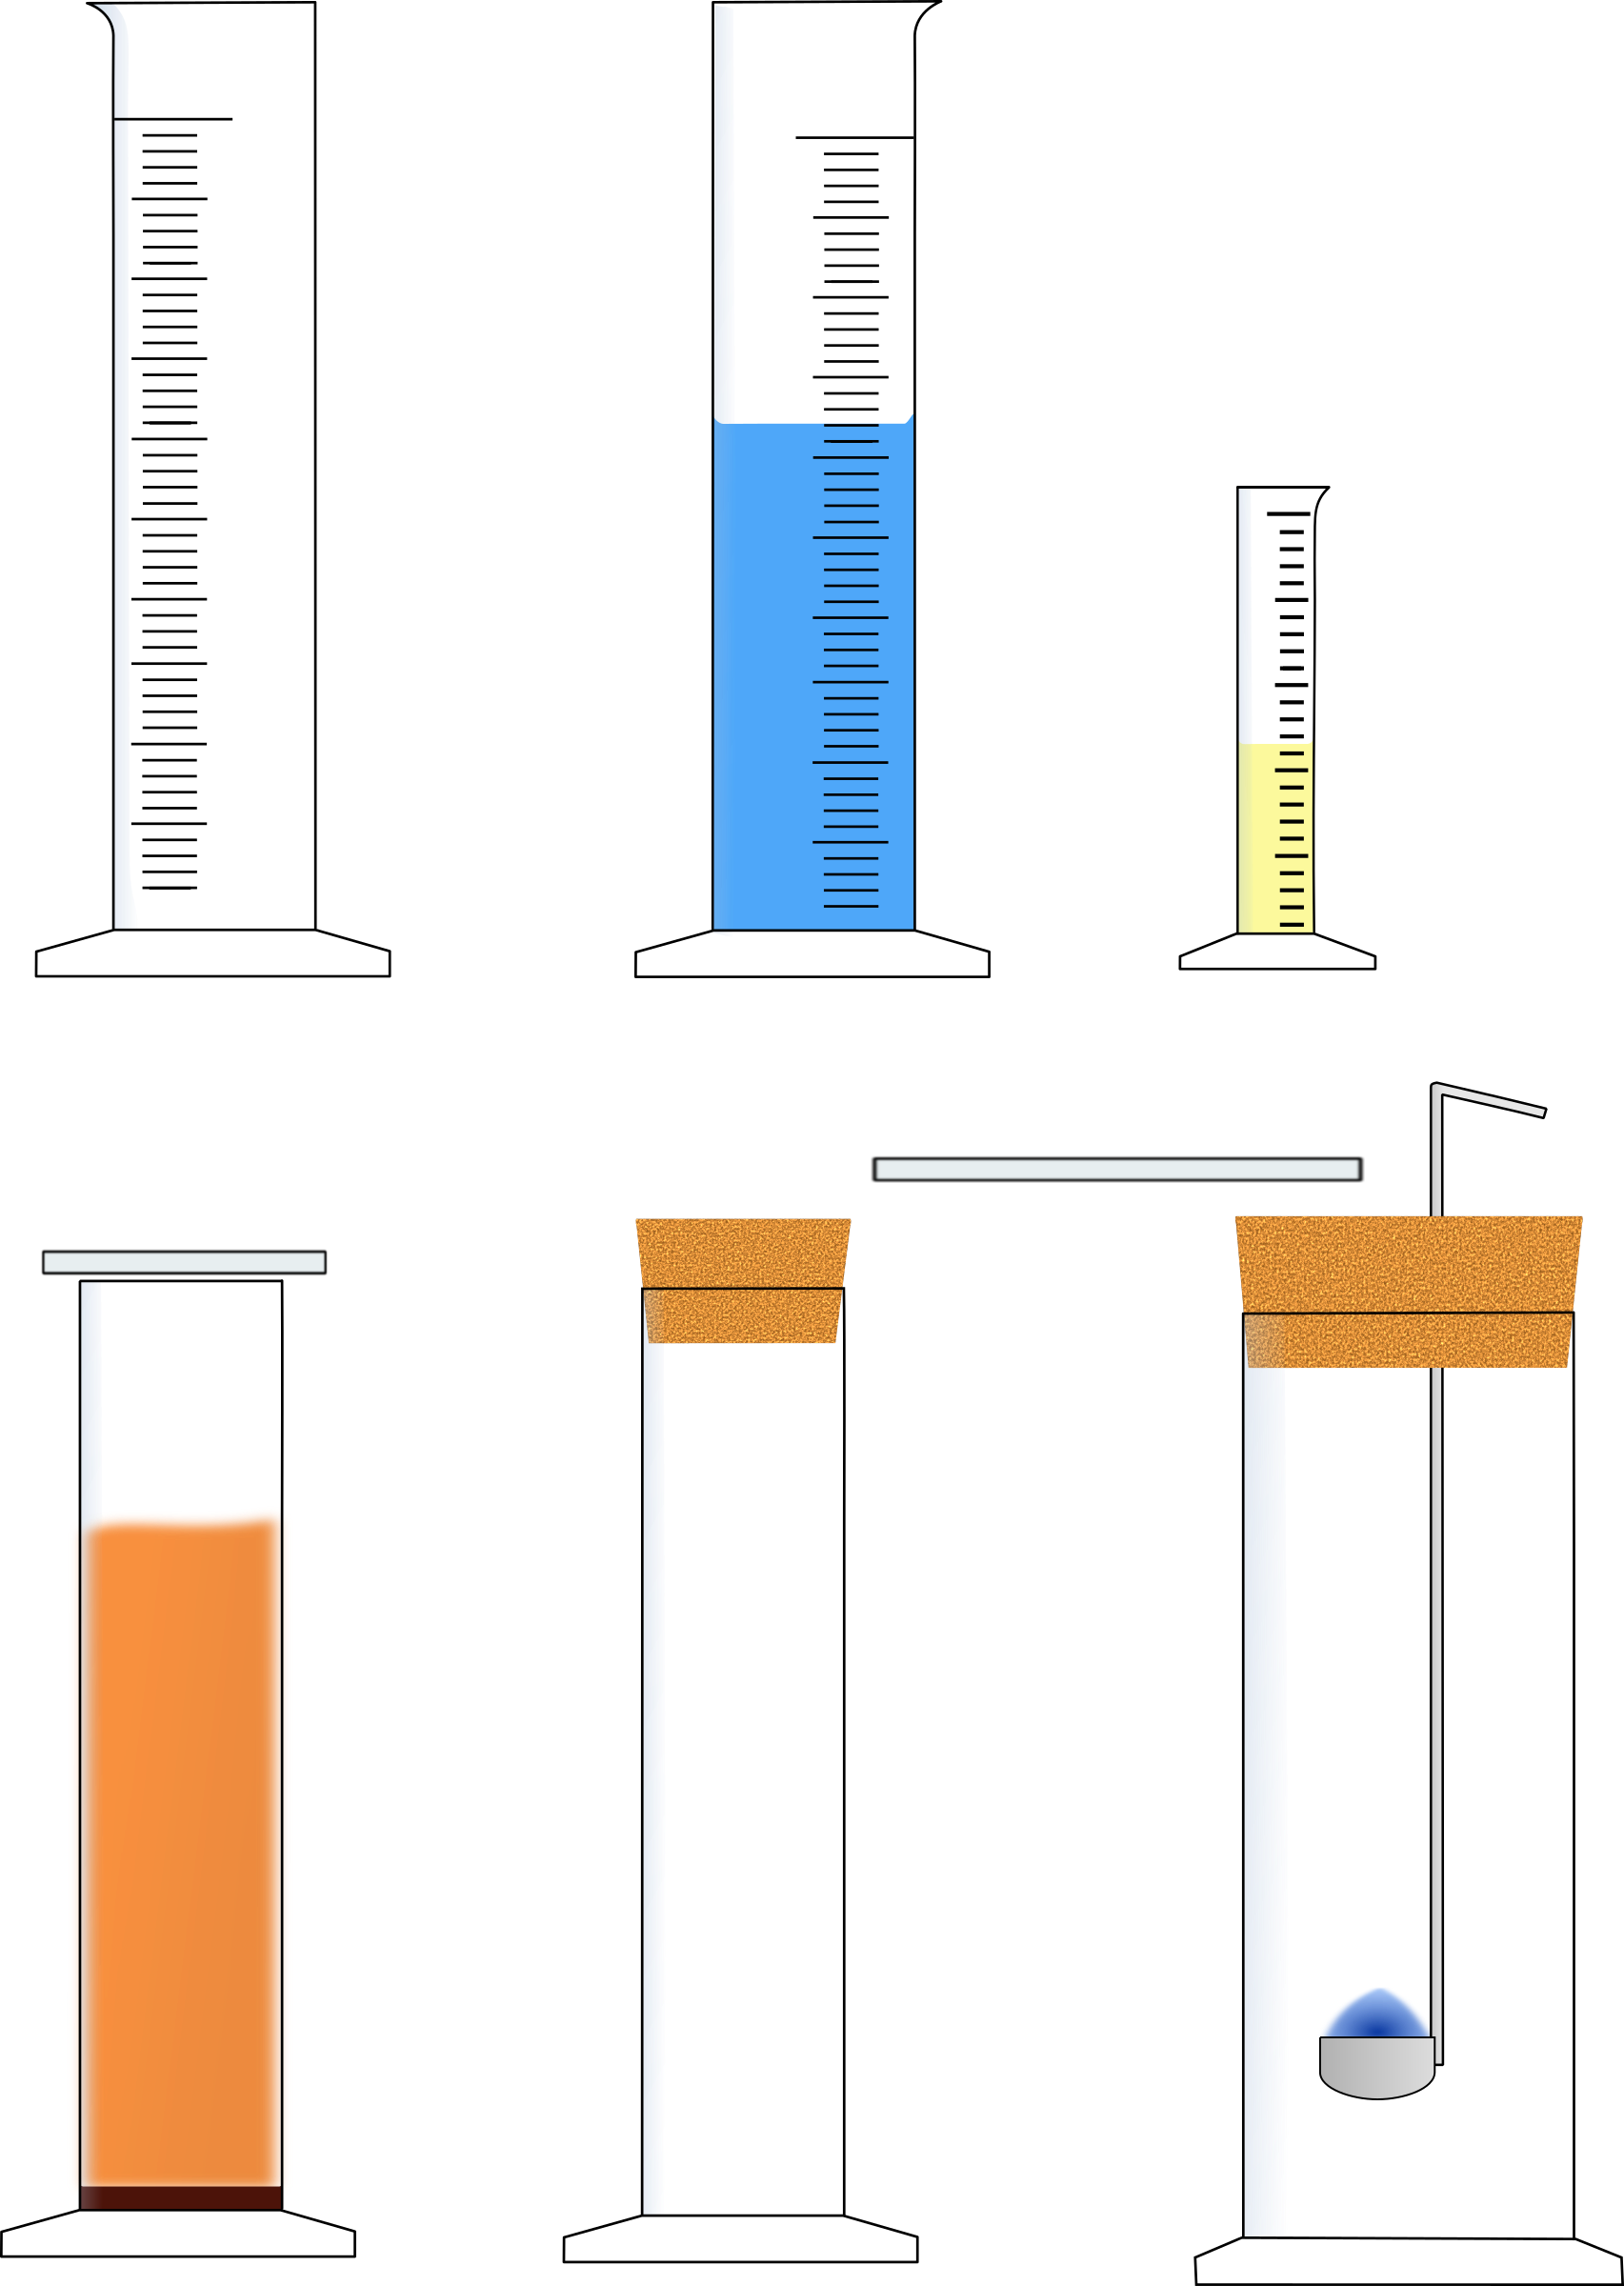 Stand- und Meßzylinder erweitert / Measuring cylinder with equipment by B.Lachner